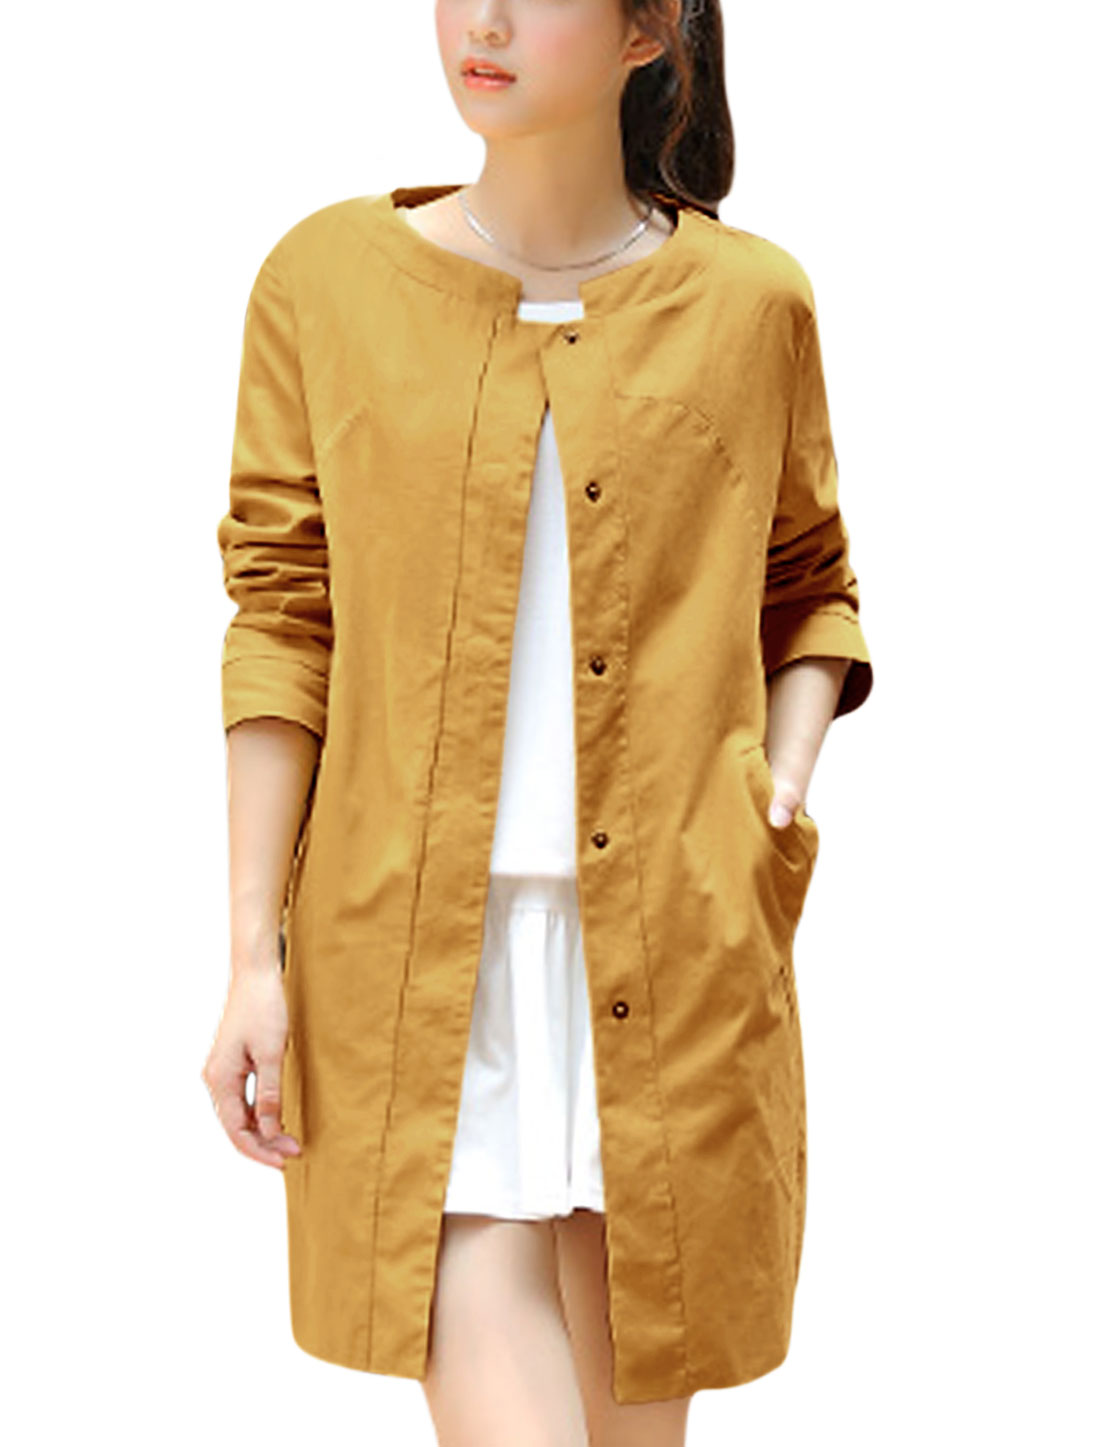 Lady Long Sleeve Round Neck Buttons Closure Front Trench Coat Ochre L